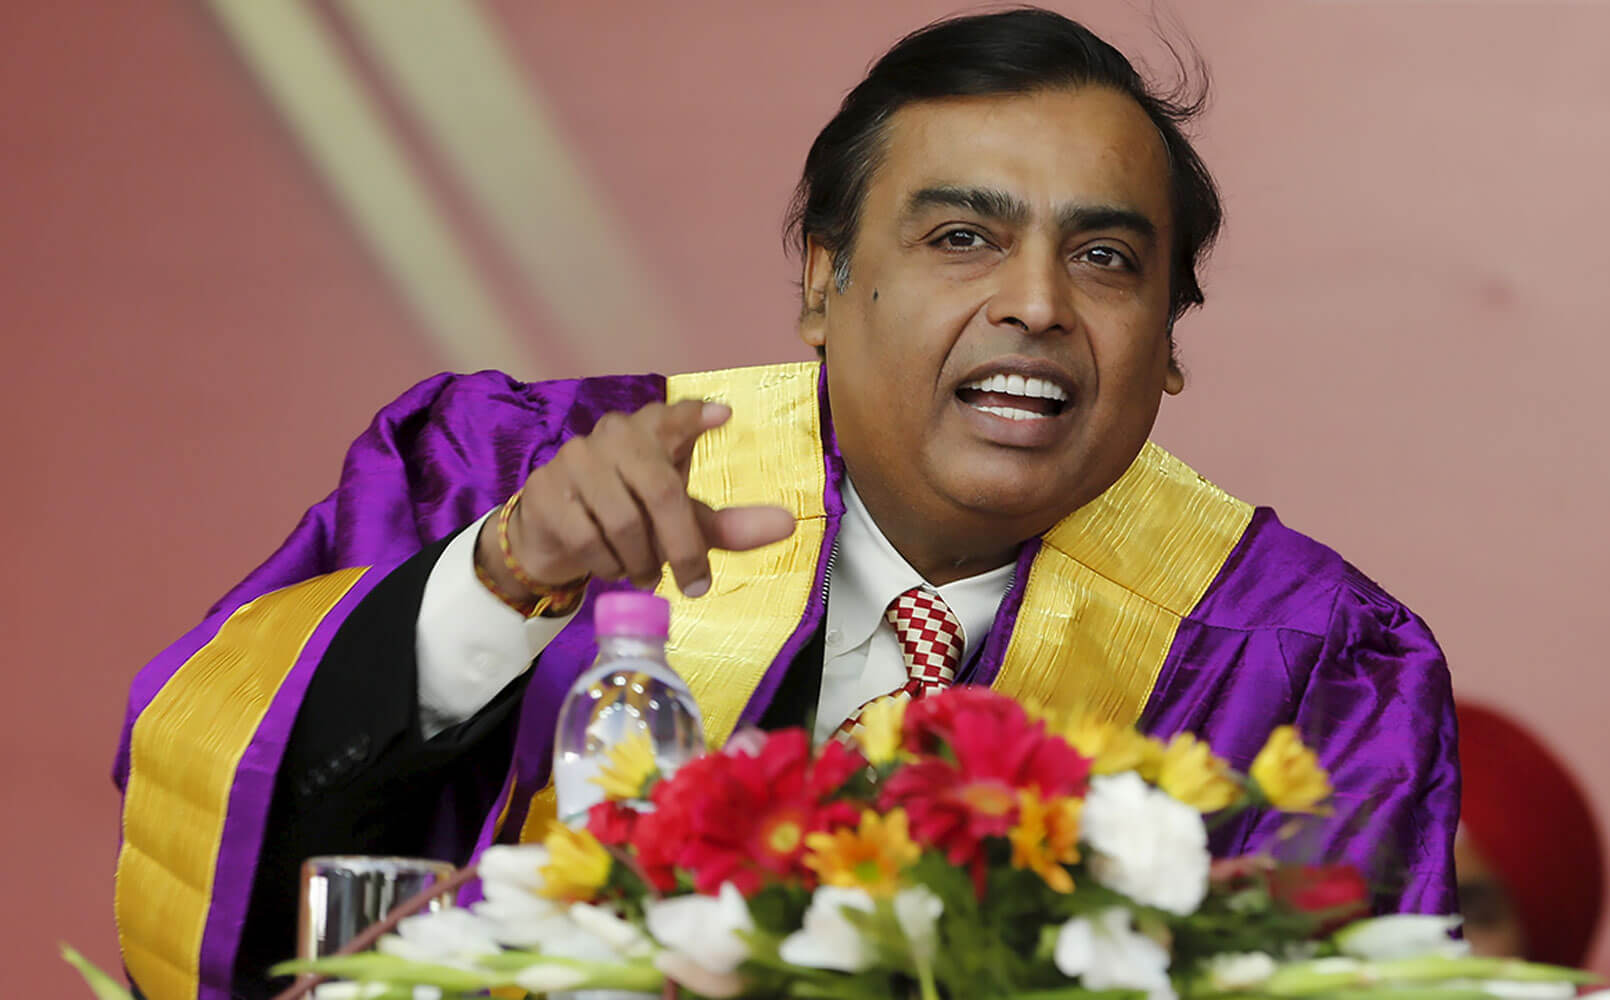 Мукеш Амбани Mukesh Ambani владелец Reliance Industries